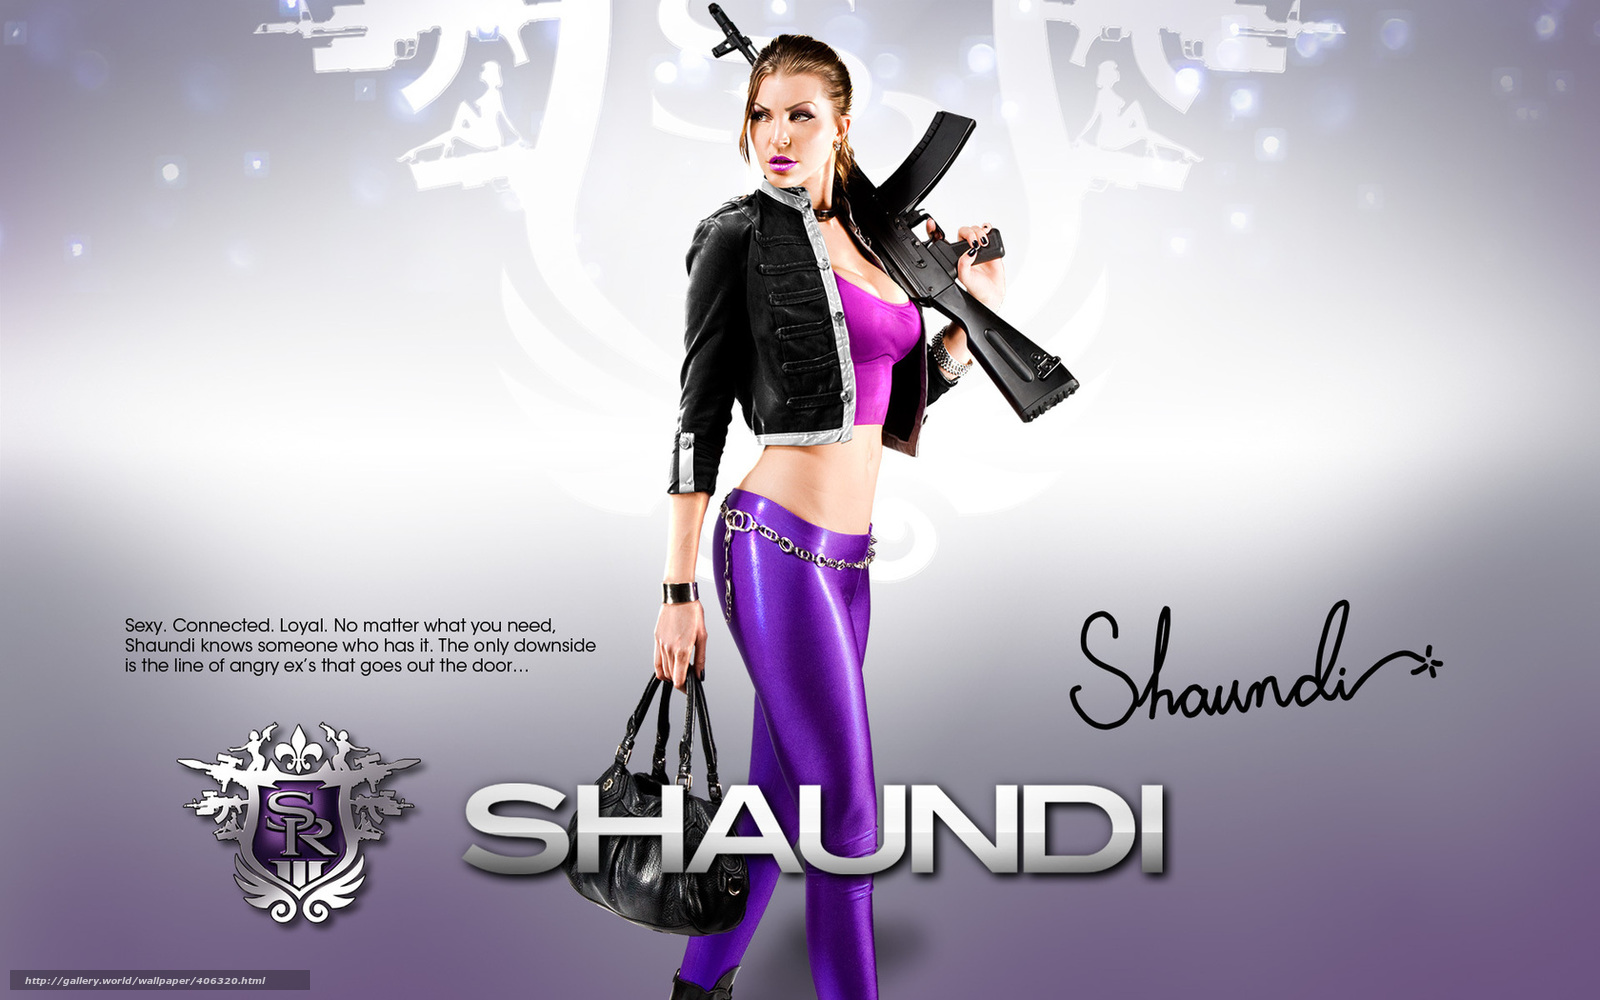 Porn saints row shoundi nude girl